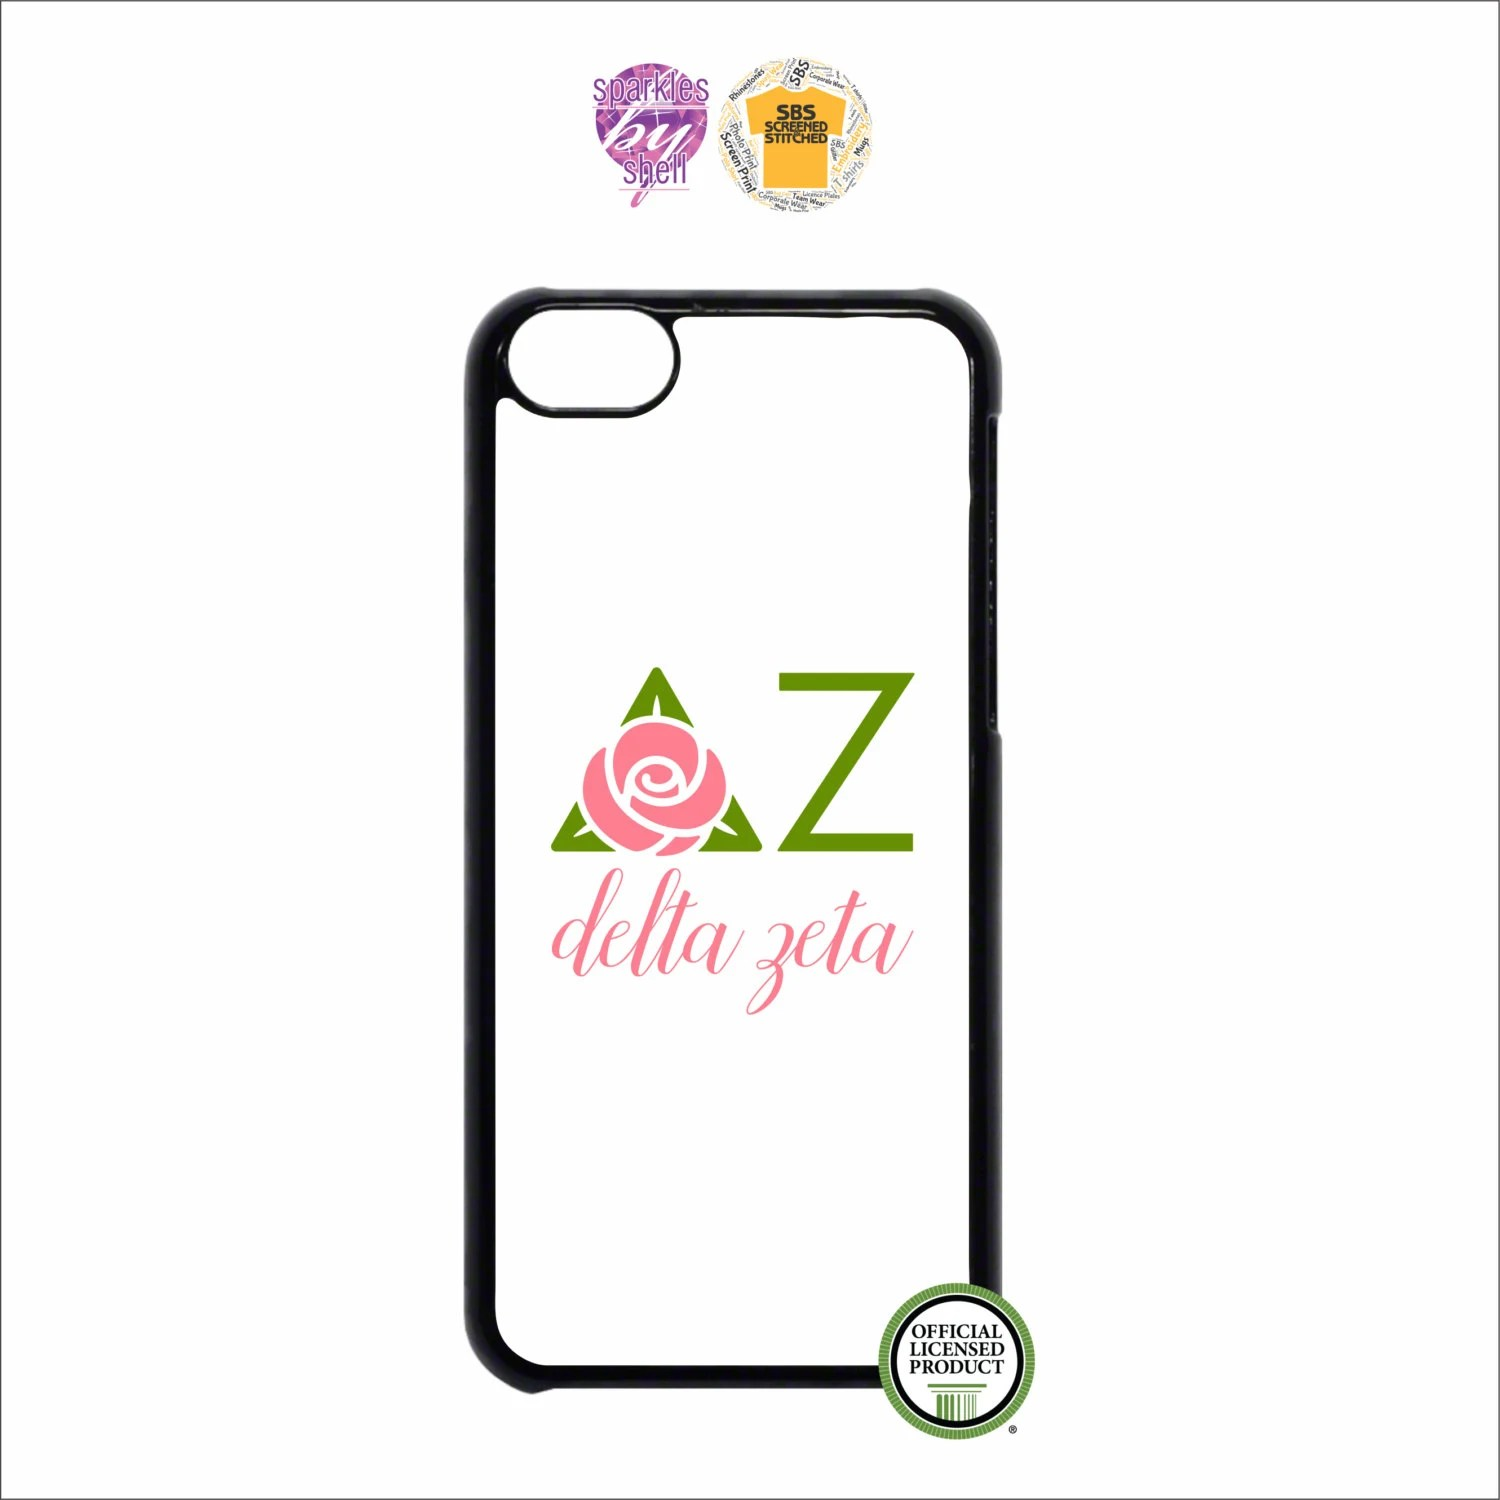 Delta Zeta Cell Phone Cover Dz Cell Phone Iphone Samung